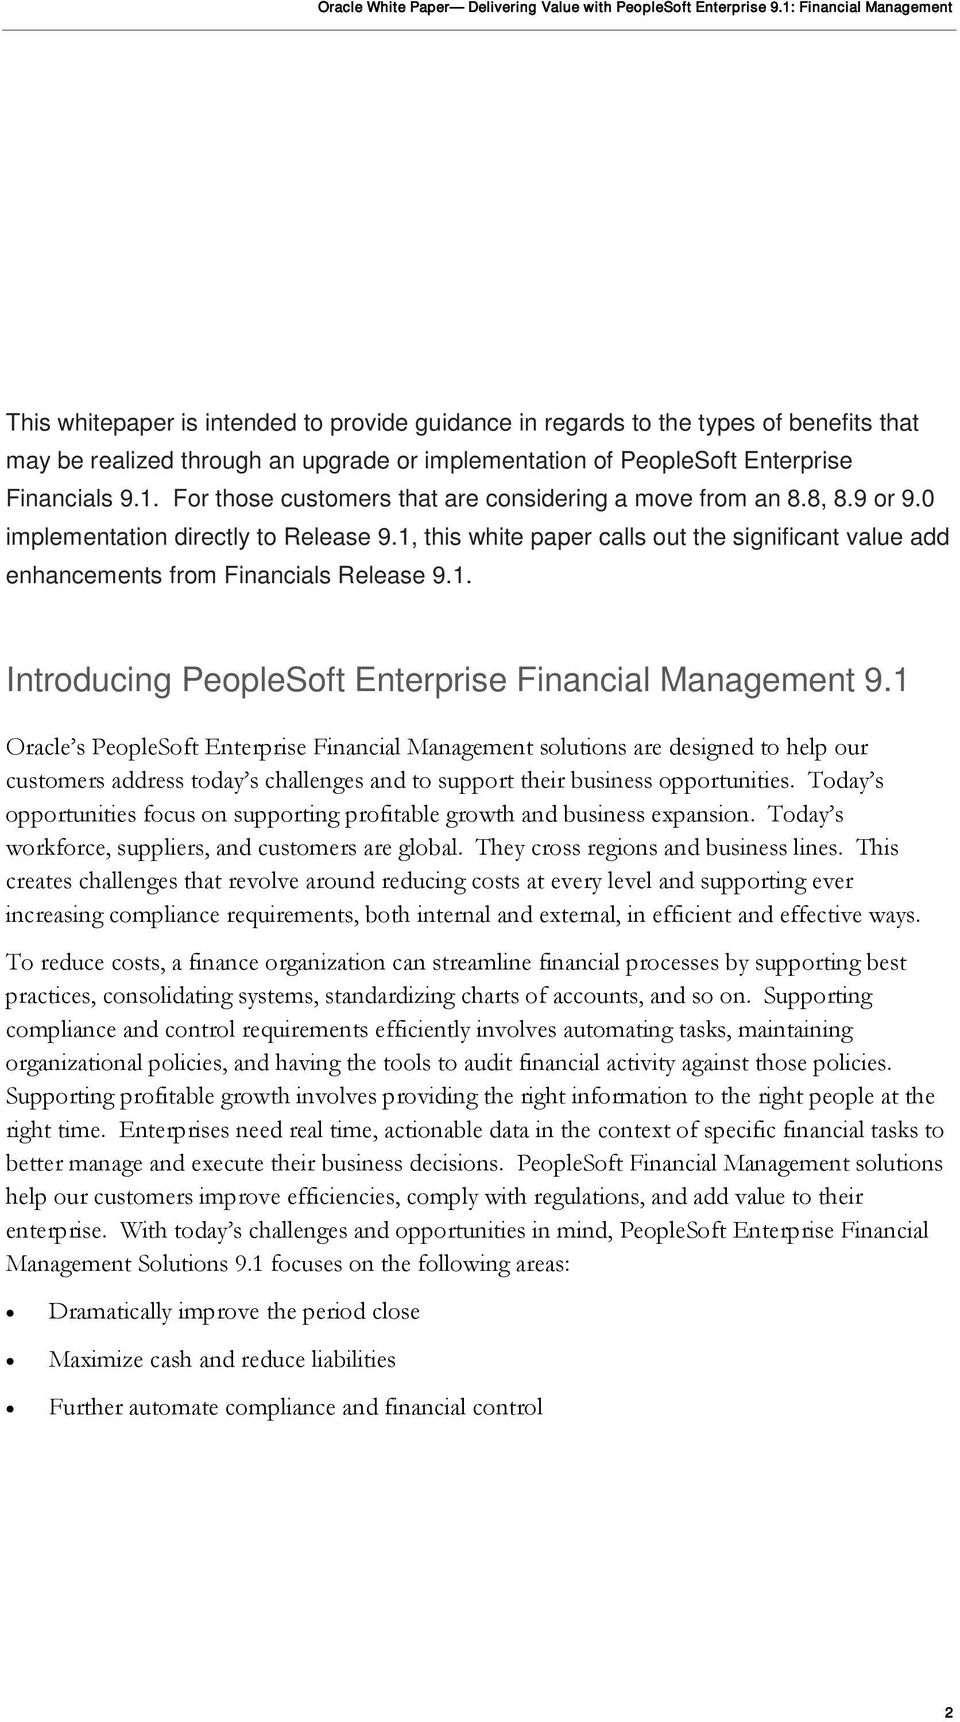 1, this white paper calls out the significant value add enhancements from Financials Release 9.1. Introducing PeopleSoft Enterprise Financial Management 9.